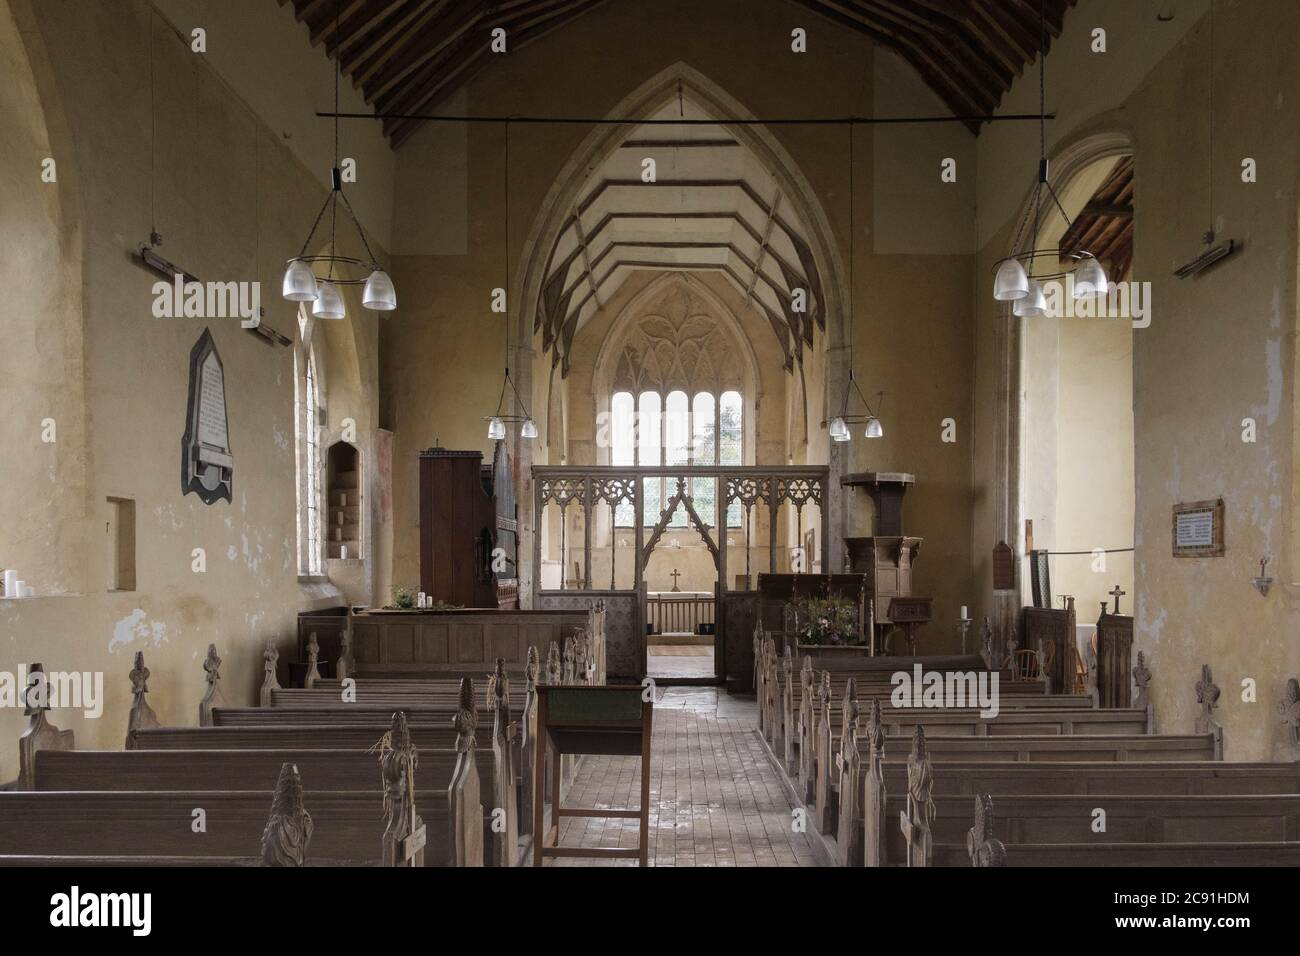 Interior of the medieval Church of St Martin, Thompson, in The Brecks, Norfolk Stock Photo